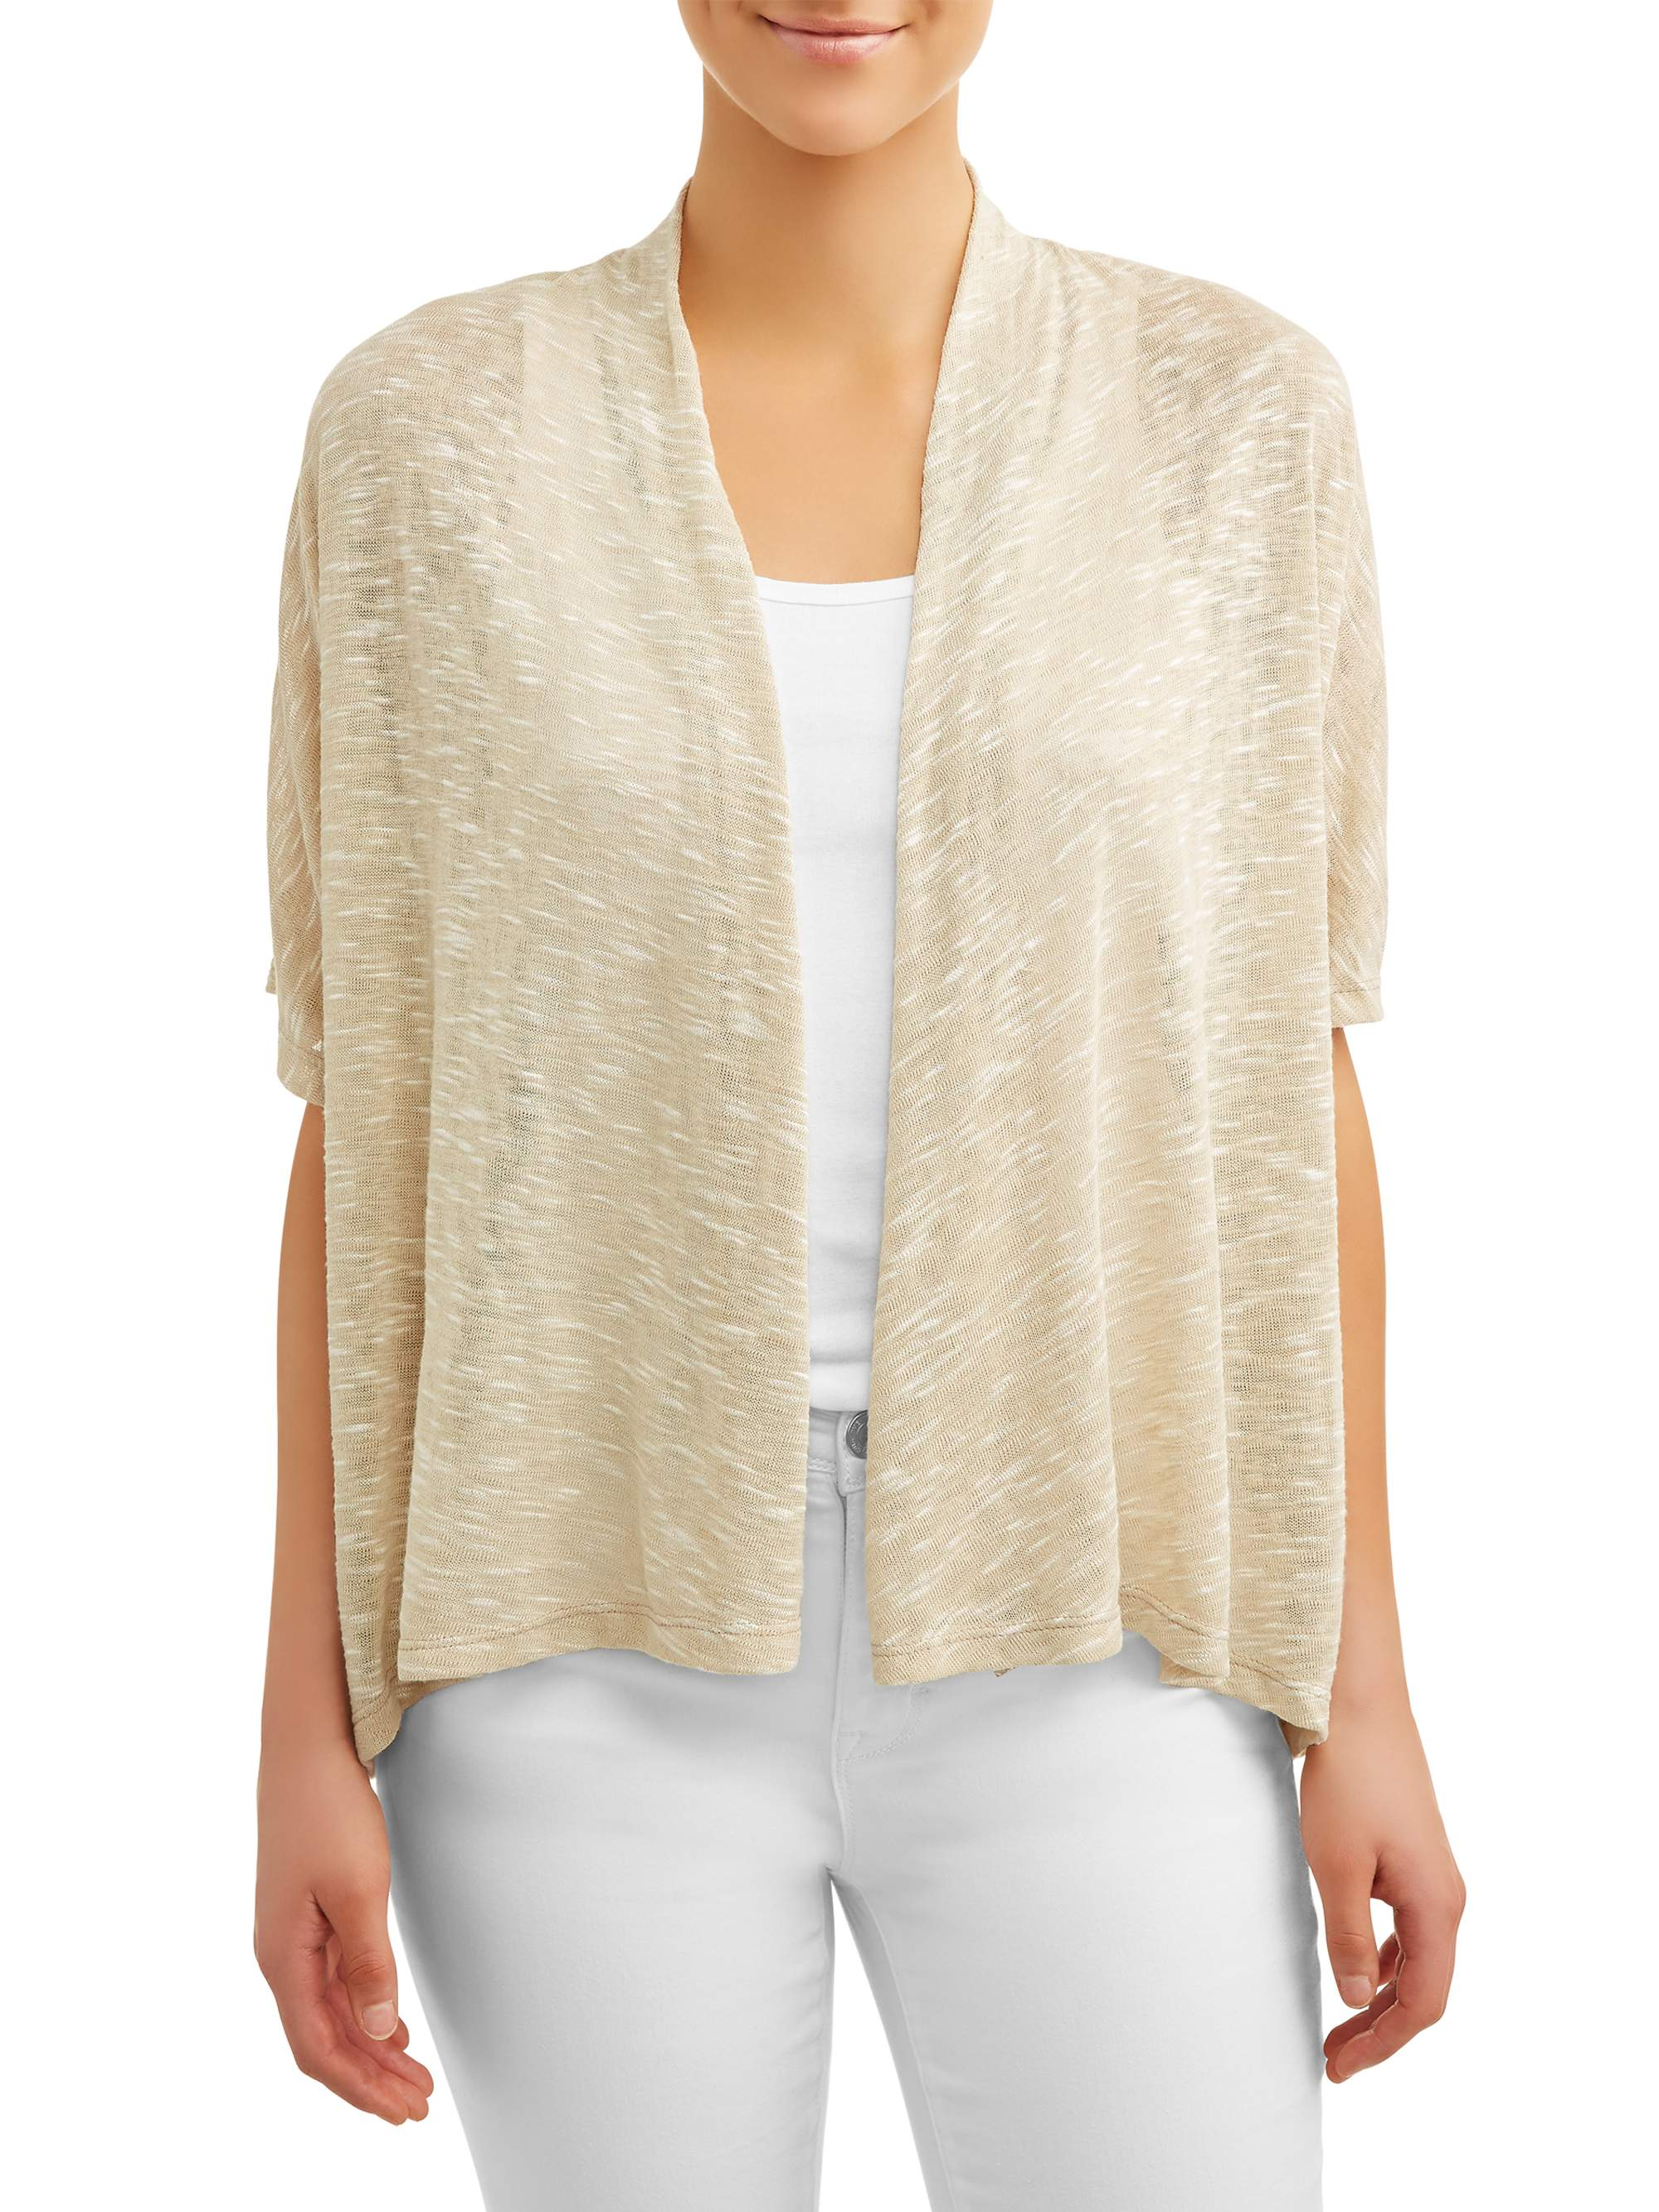 Women's Lightweight Open Front Cardigan